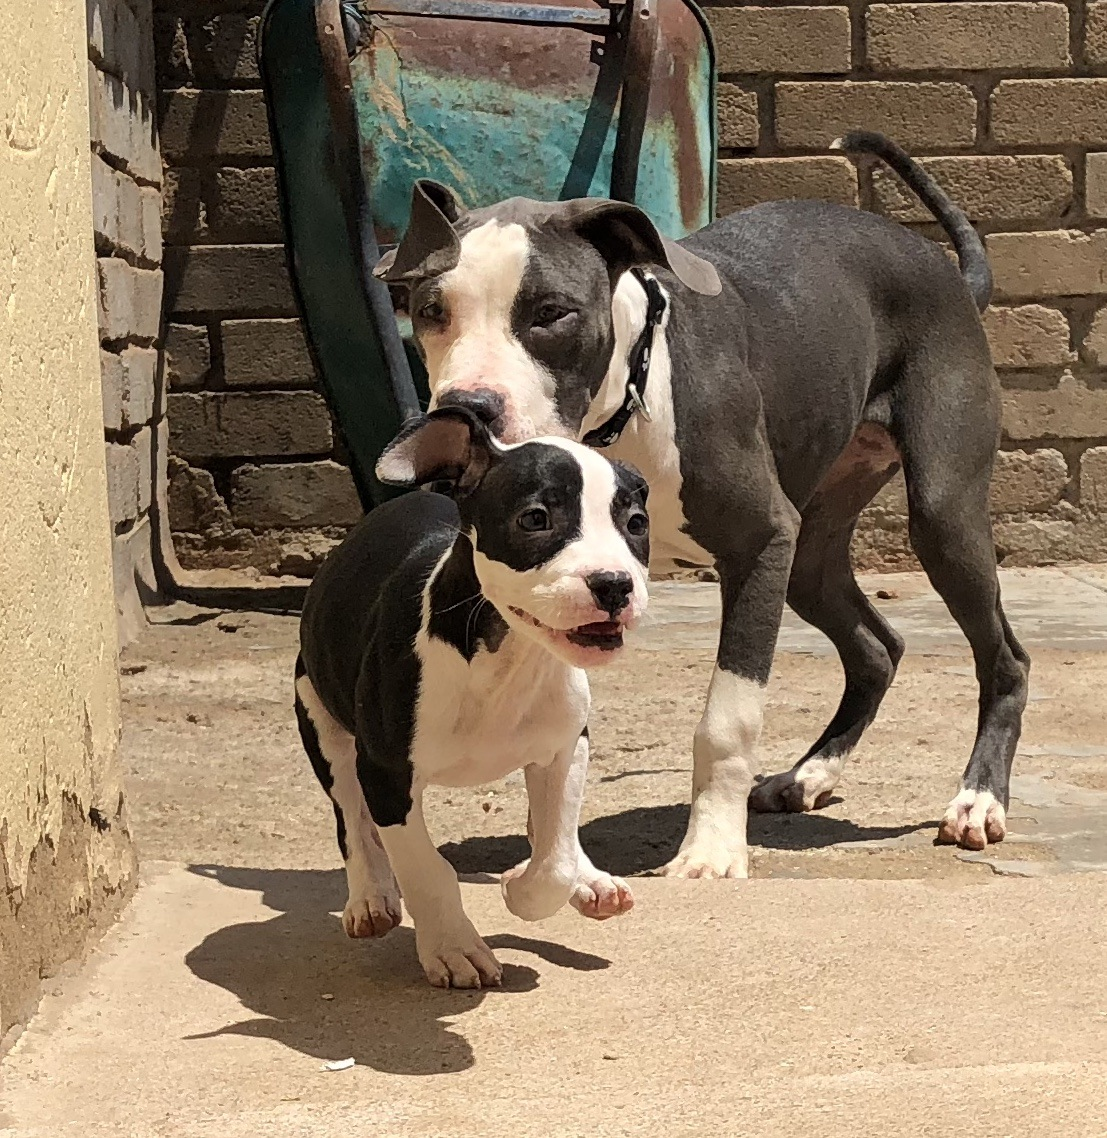 Pitbull Puppies in Pretoria (04/02/2018)